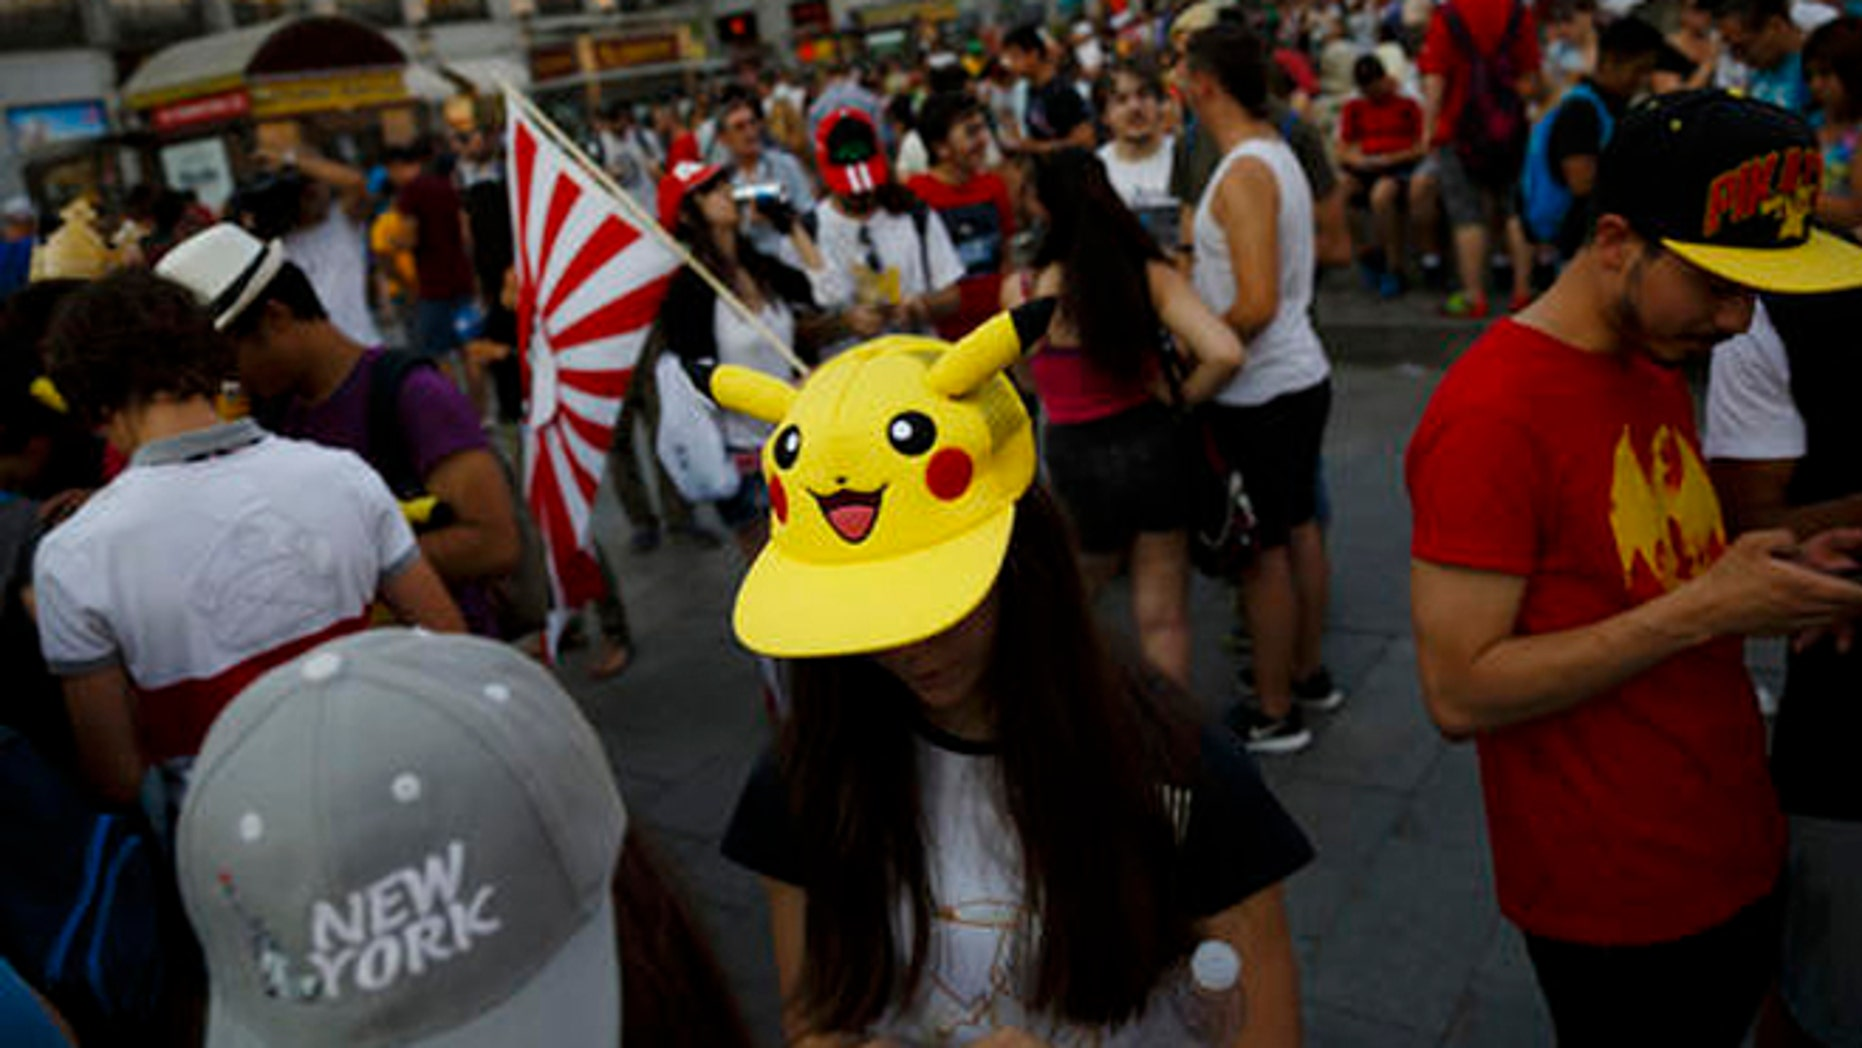 """FILE - In this Thursday, July 28, 2016, file photo, fans play the highly addictive """"Pokemon Go"""" game during a gathering in central Madrid, Spain, to play the computer game. Since debuting to wild adulation in the U.S., Australia and New Zealand this month, the game from Google spinoff Niantic Inc. has spread like wildfire, launching in more than 30 countries or territories, but not Brazil. For athletes and other visitors caught up in the wave, not having access is just one more knock against an Olympics that officials are racing to get ready. The opening ceremony takes place Friday, Aug. 5. (AP Photo/Daniel Ochoa de Olza, File)"""